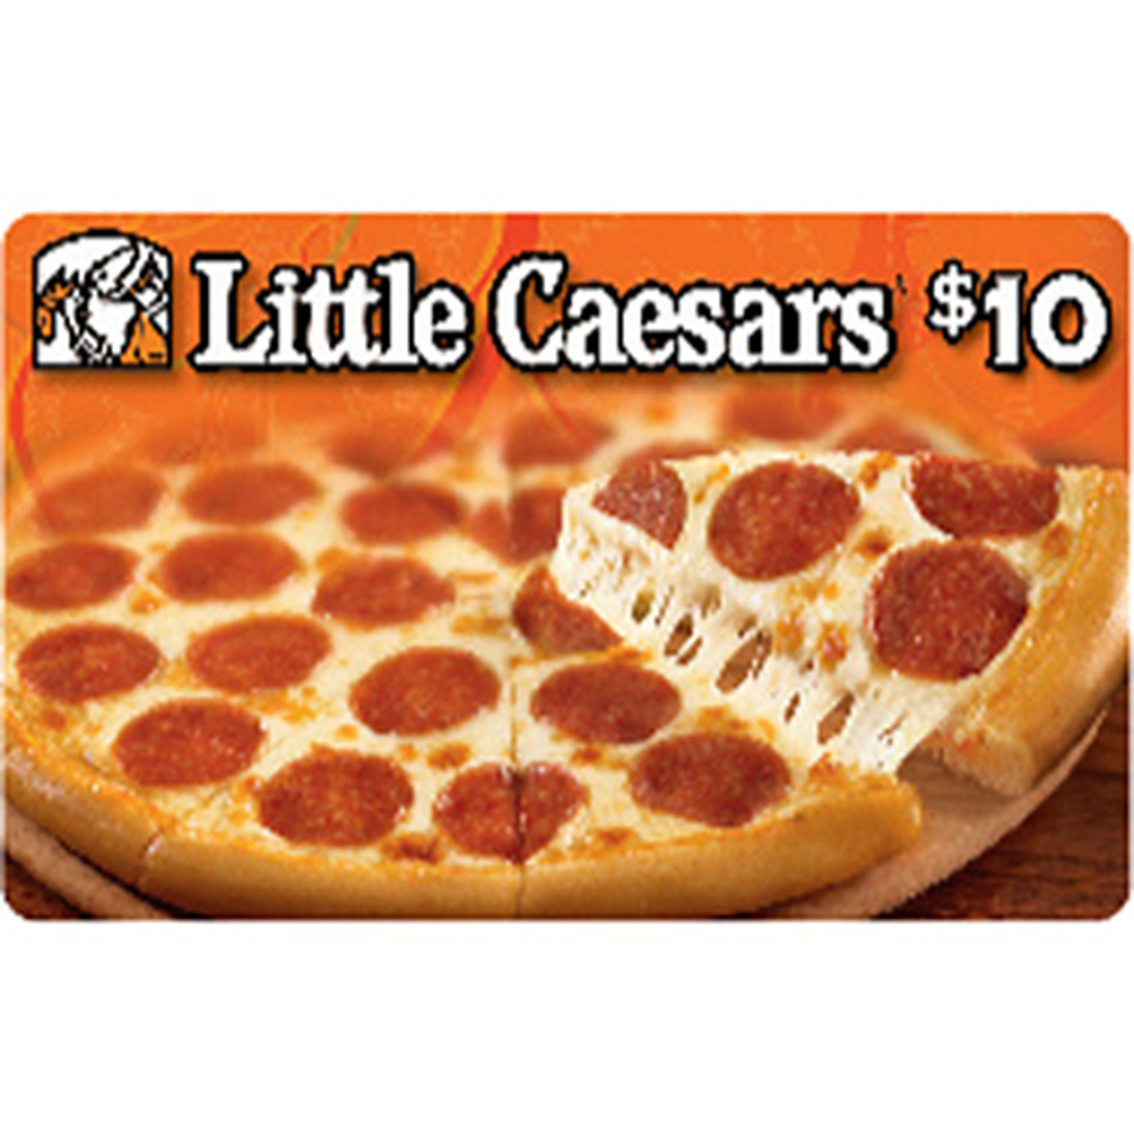 Little Caesars Gift Card | Entertainment & Dining | Gifts & Food ...